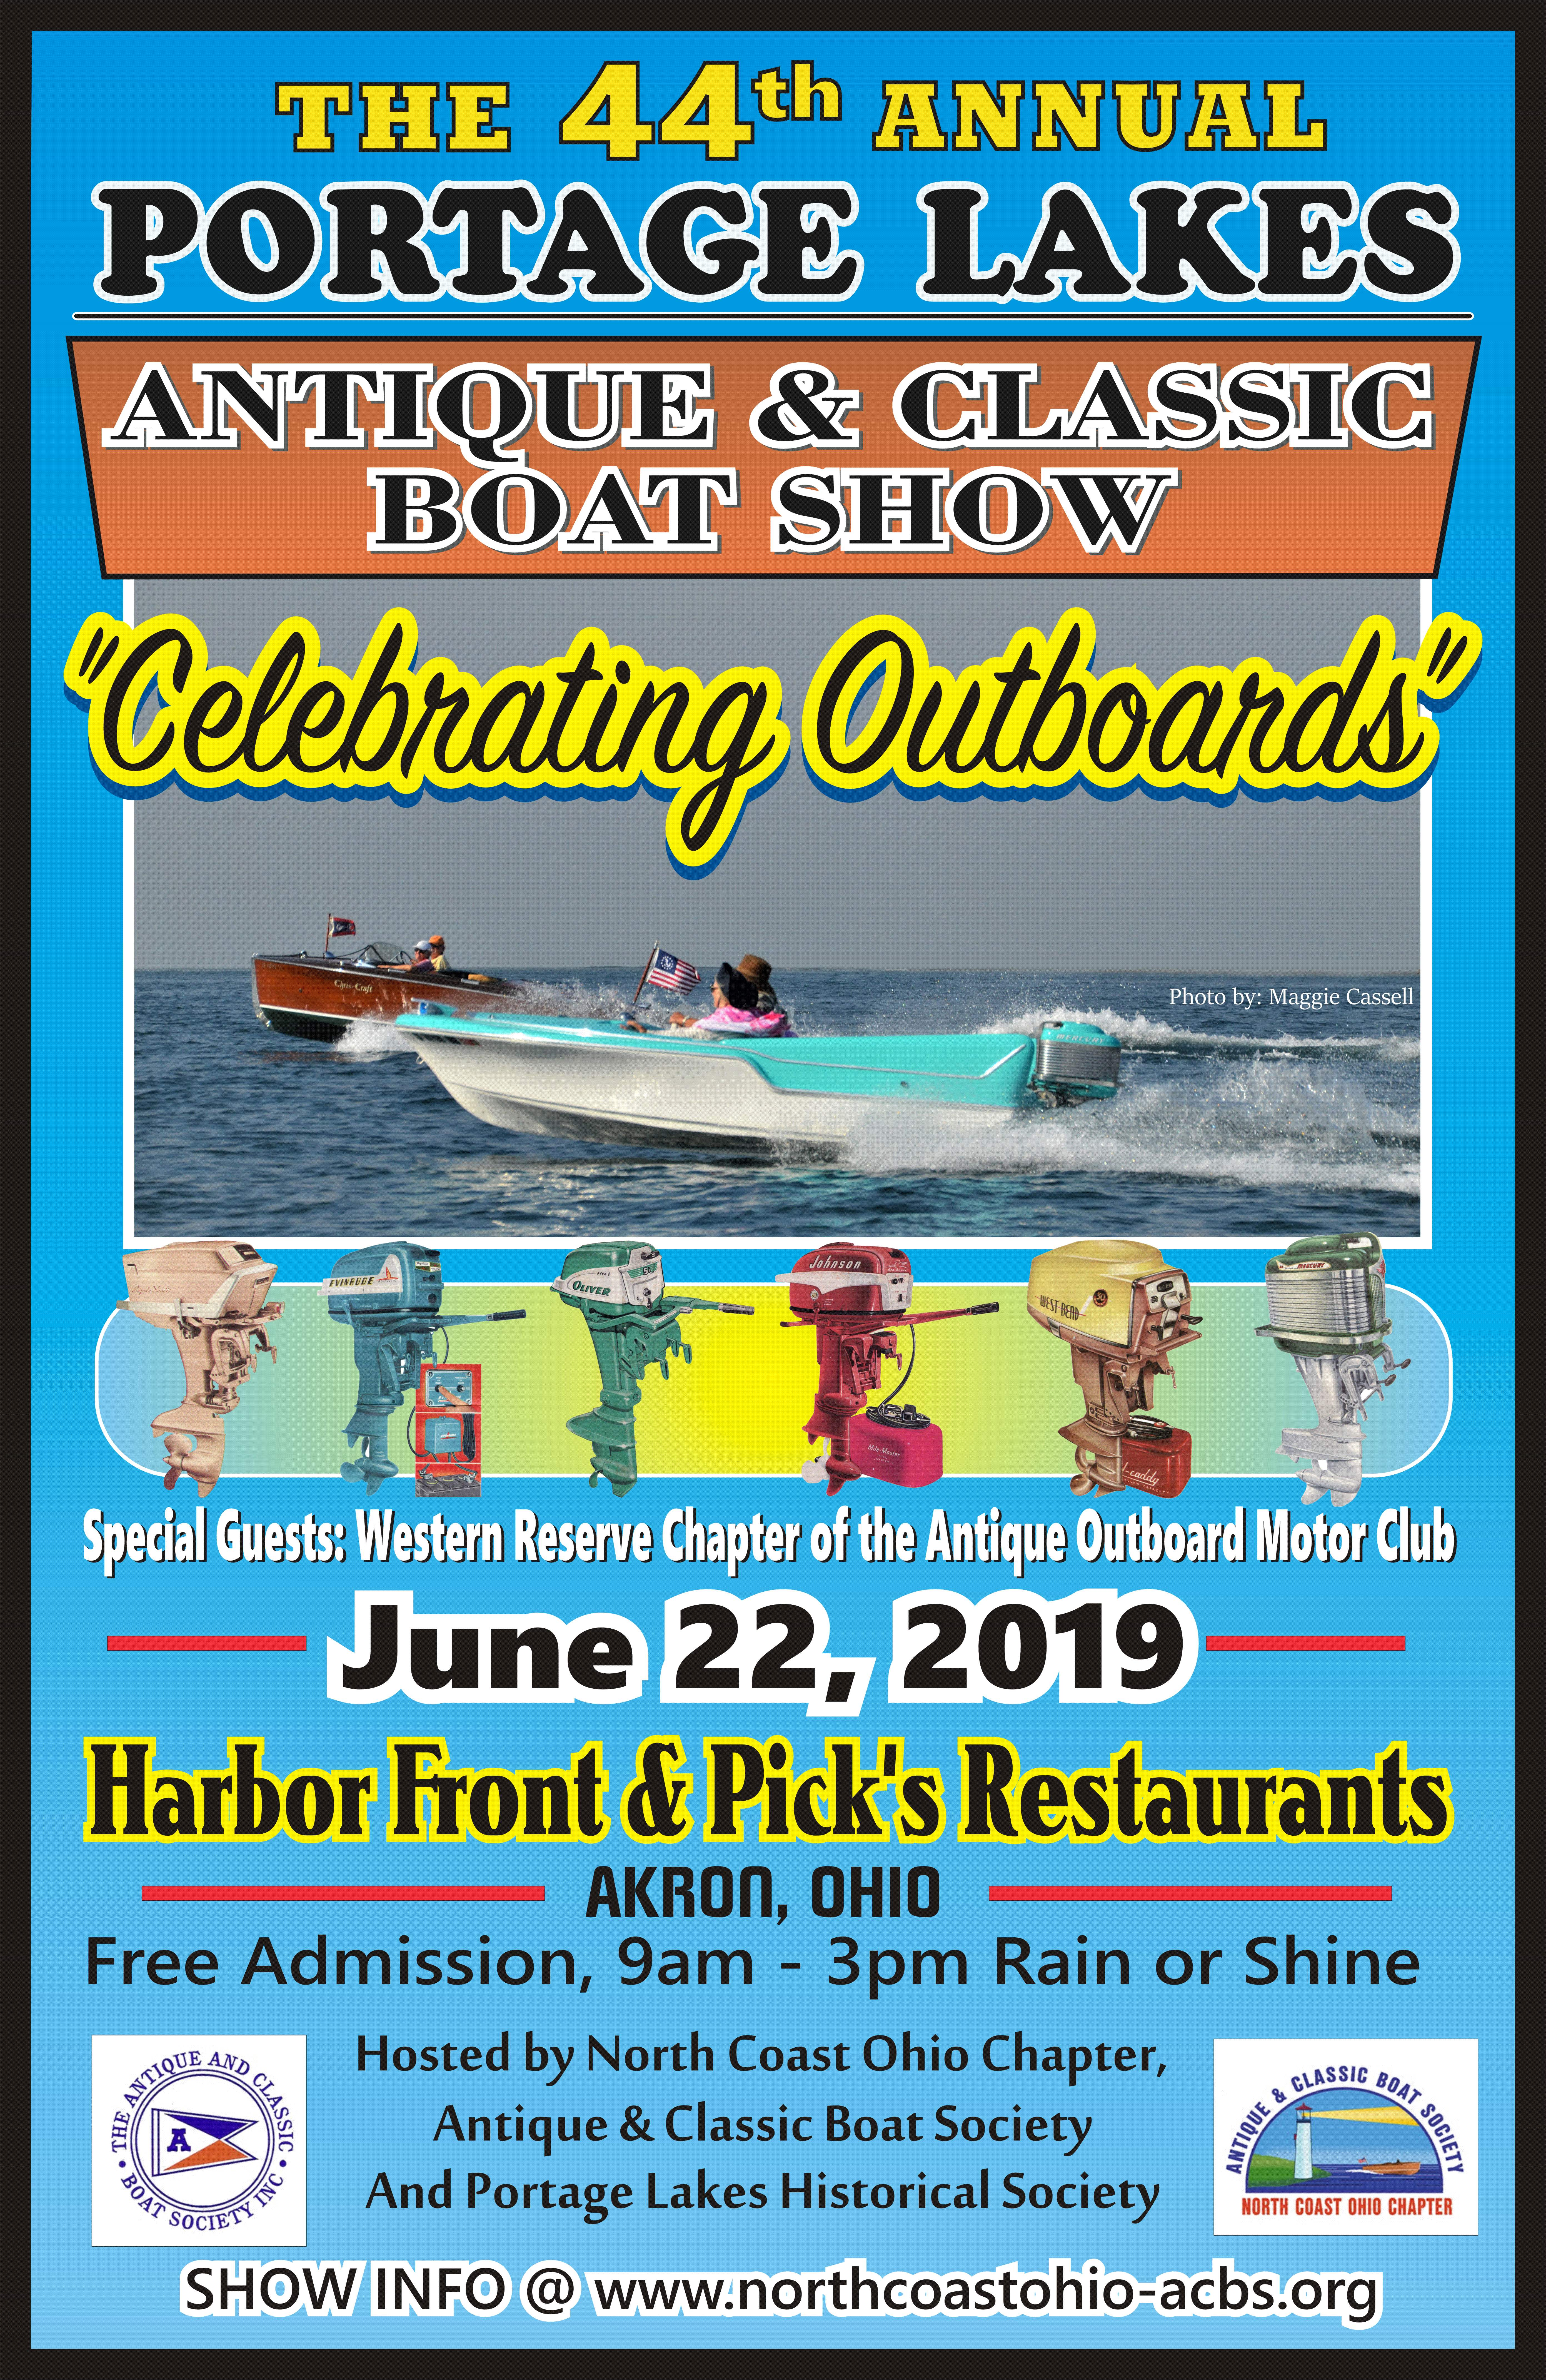 BOAT-SHOW-2019-Final